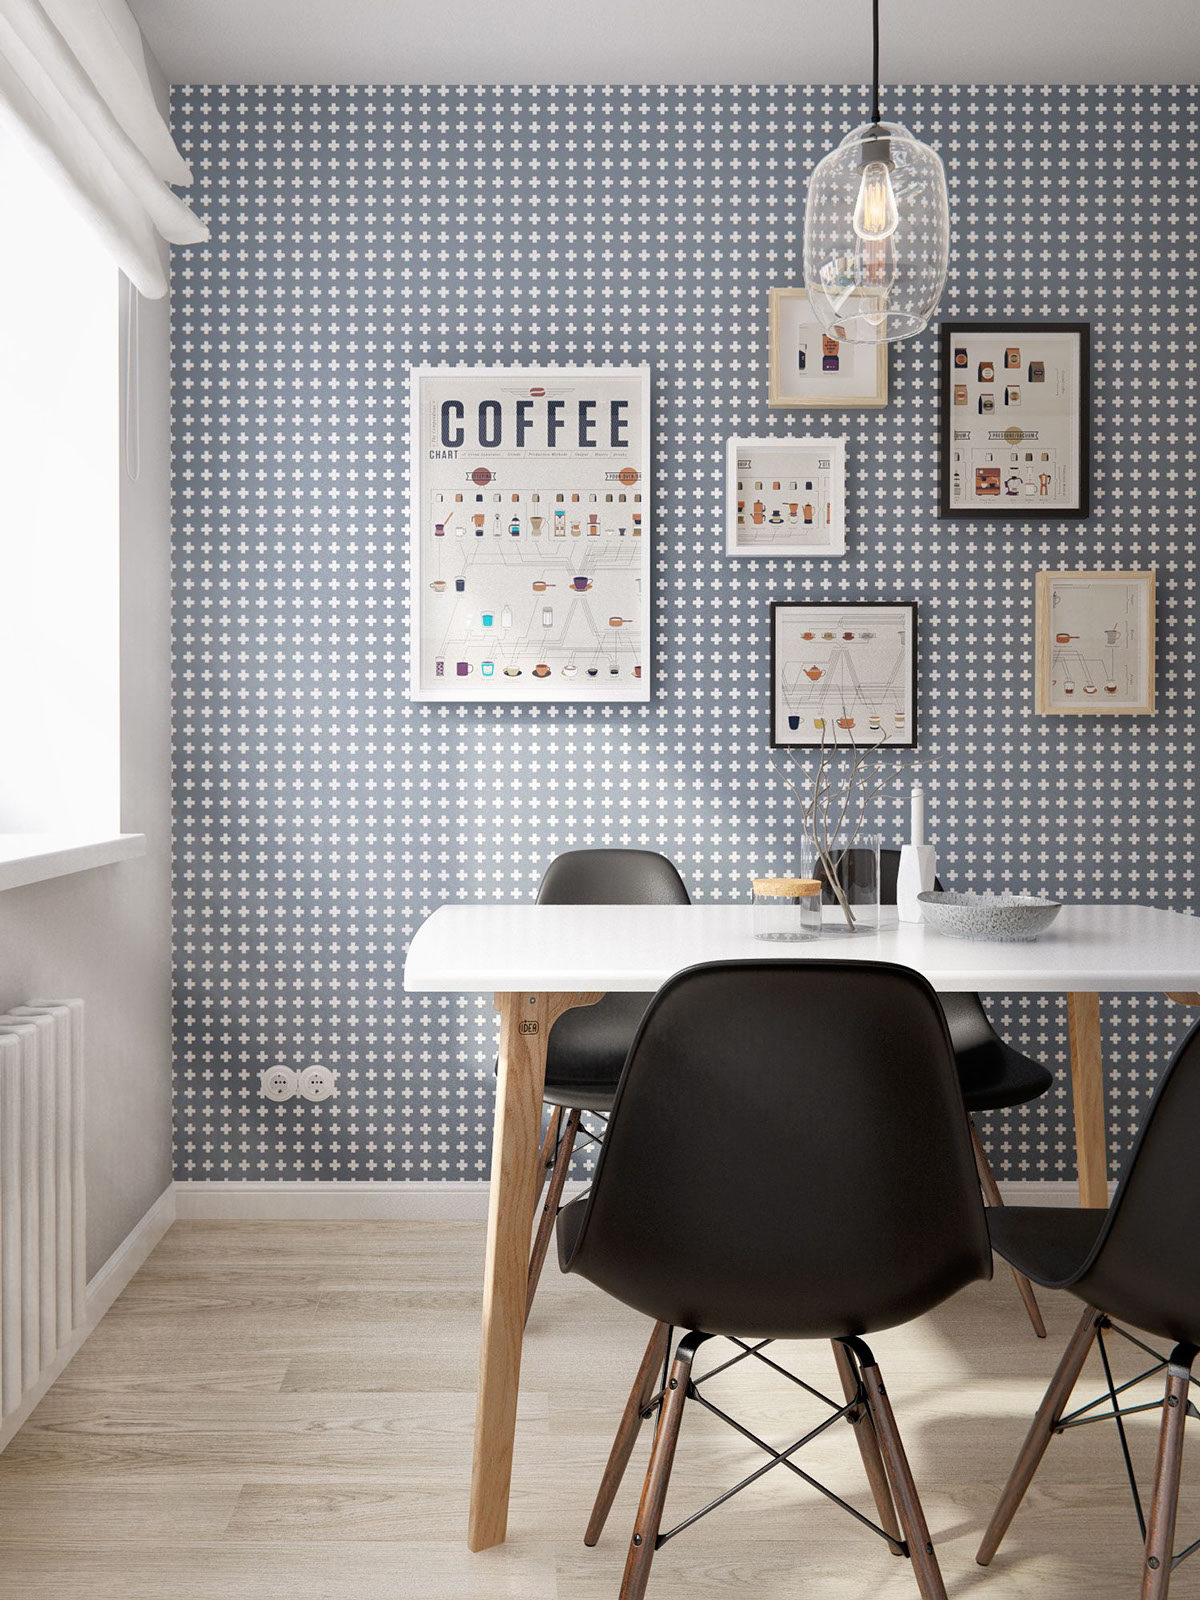 Blue scandinavian wallpaper interior design ideas Scandinavian wallpaper and decor